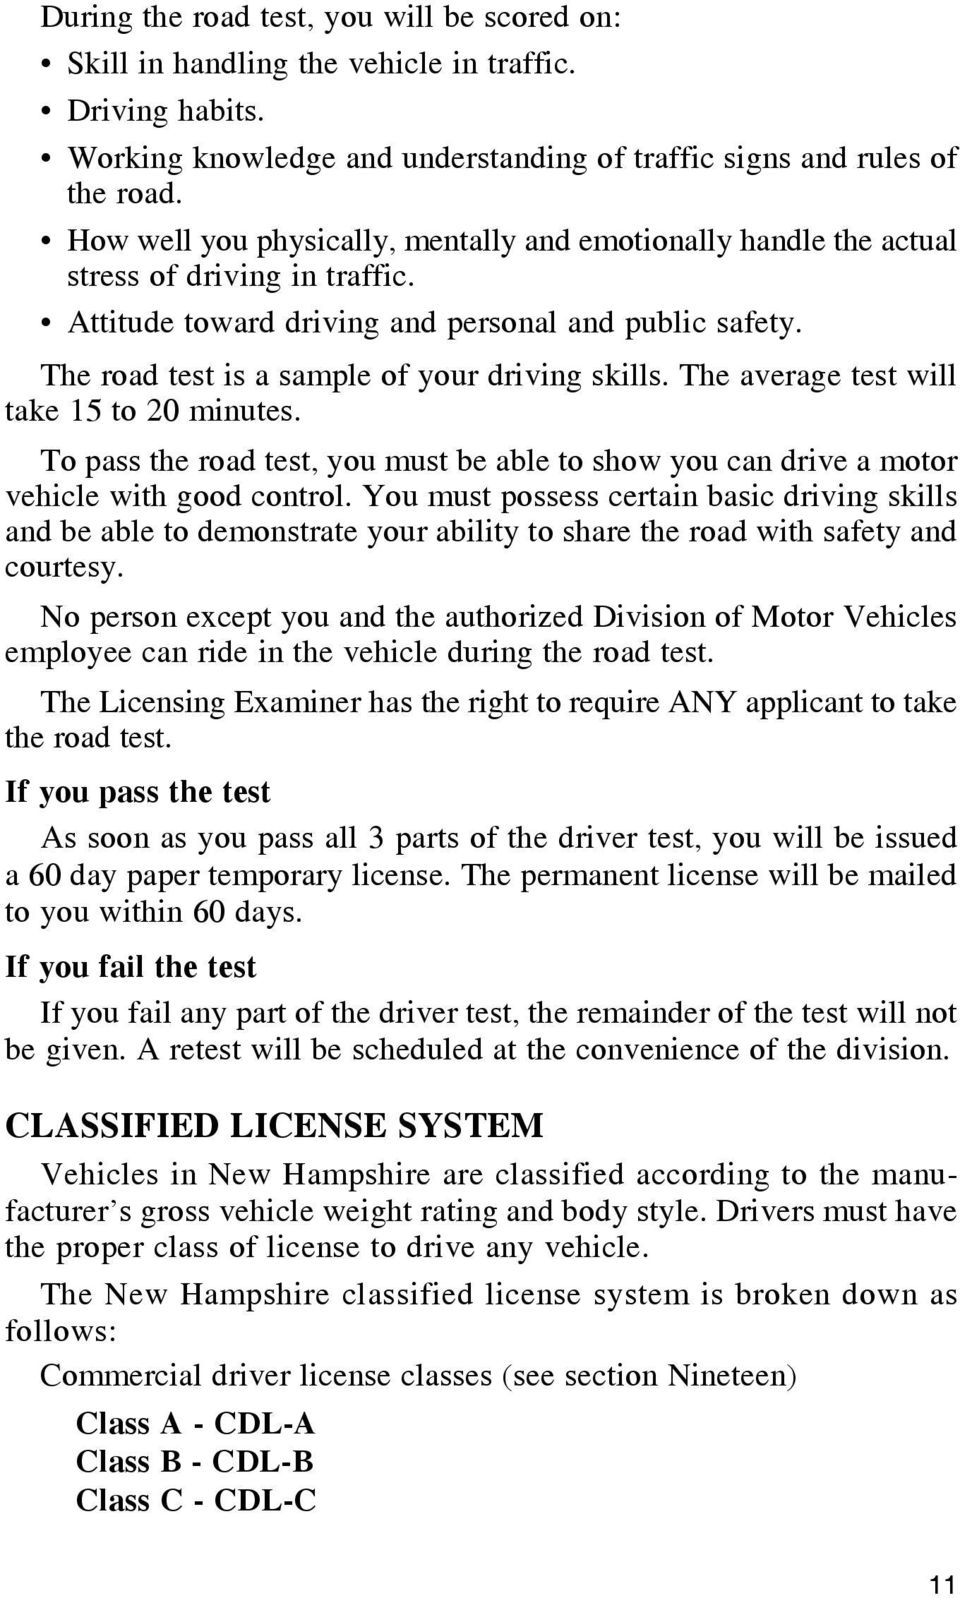 The road test is a sample of your driving skills. The average test will take 15 to 20 minutes. To pass the road test, you must be able to show you can drive a motor vehicle with good control.